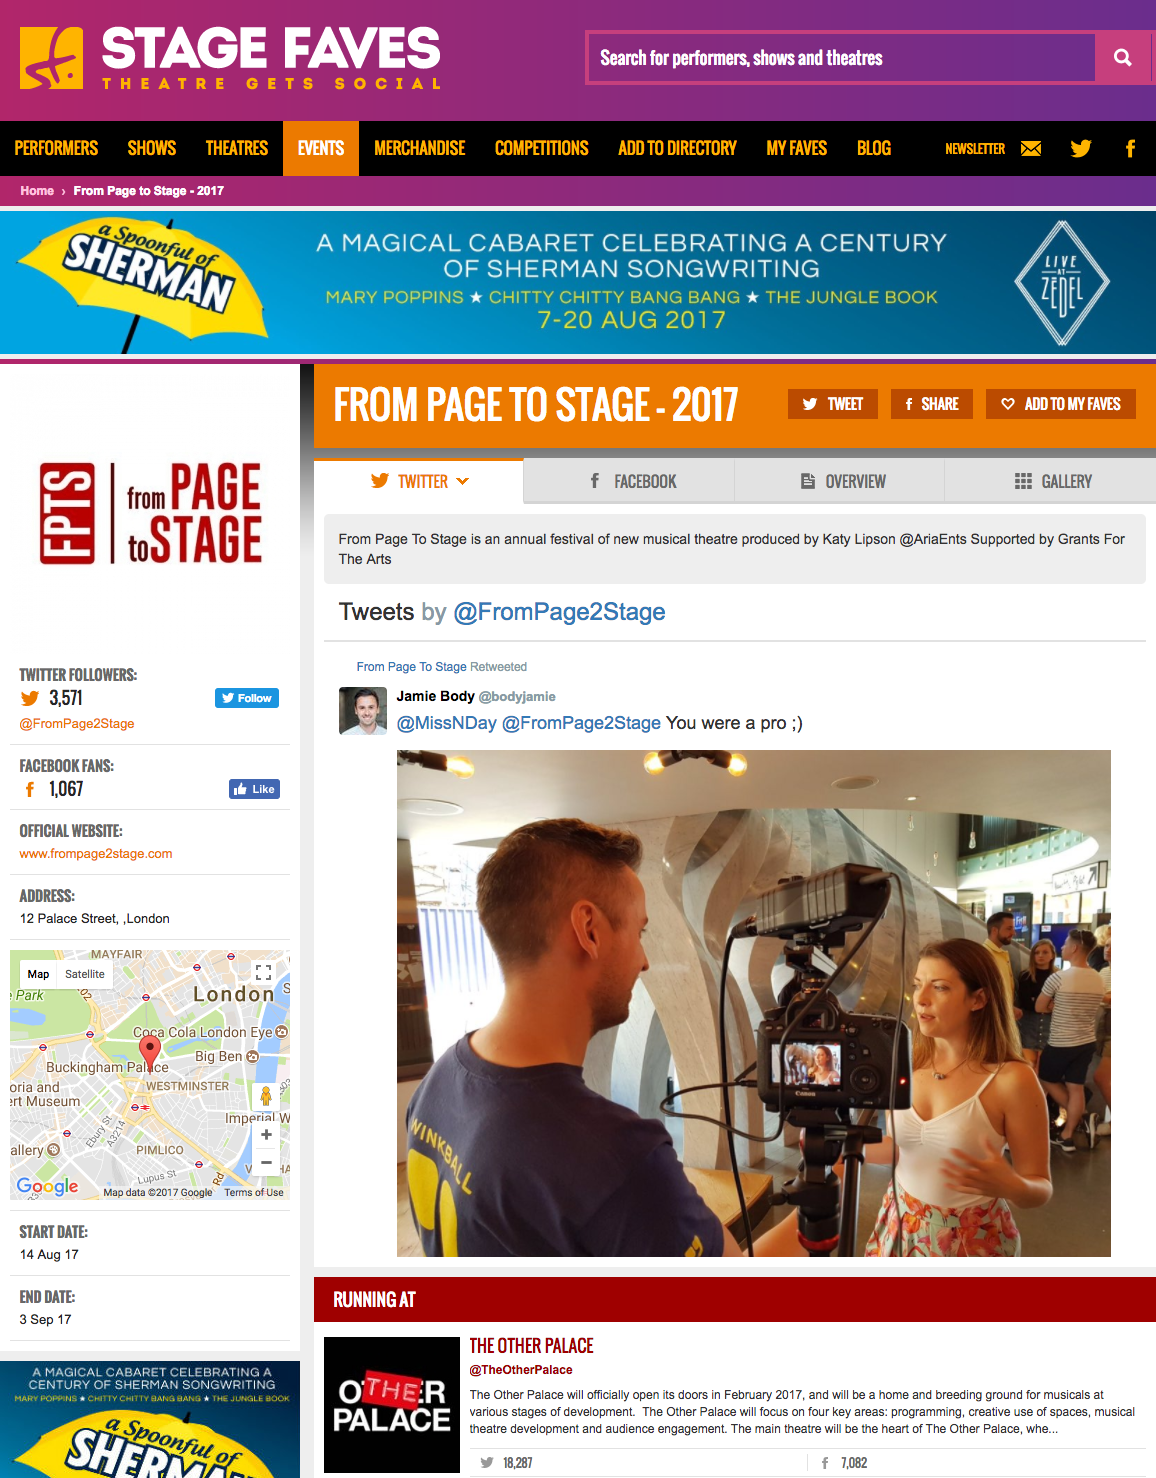 Get all social media for Some Lovers, From Page to Stage & its casts on www.stagefaves.com